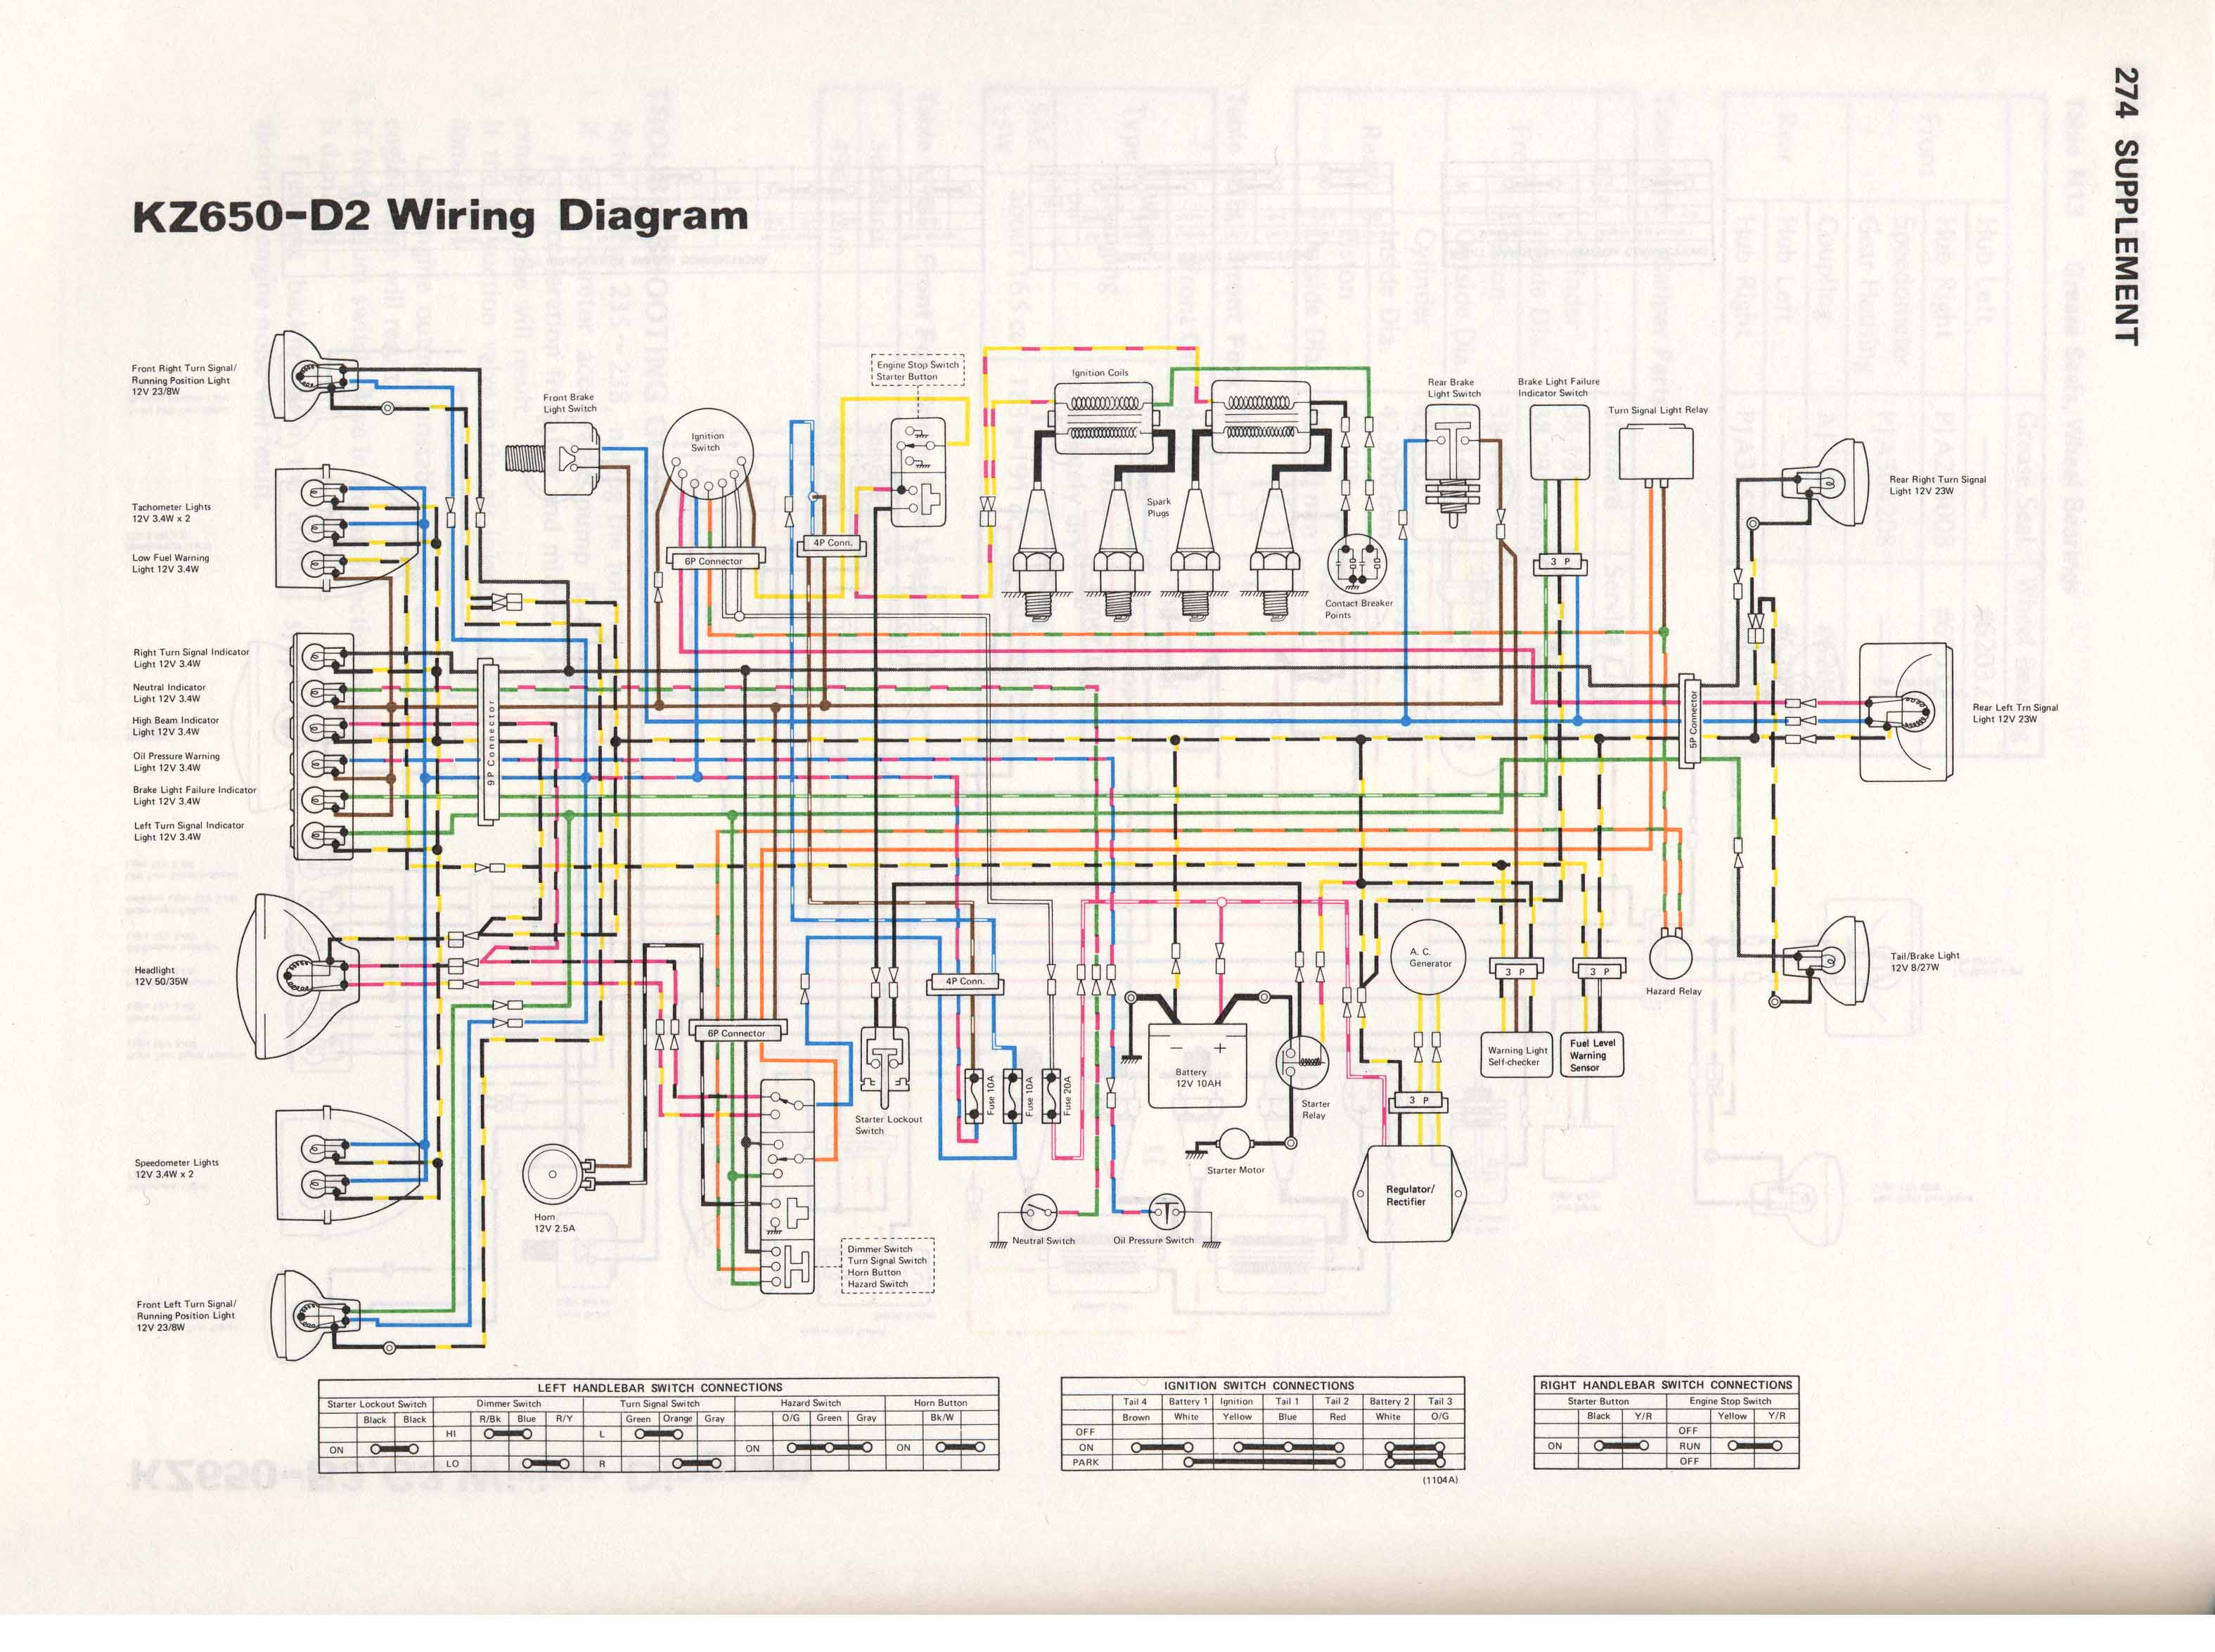 KZ650 D2 kz650 info wiring diagrams 82 Kawasaki LTD 750 Bobber at webbmarketing.co